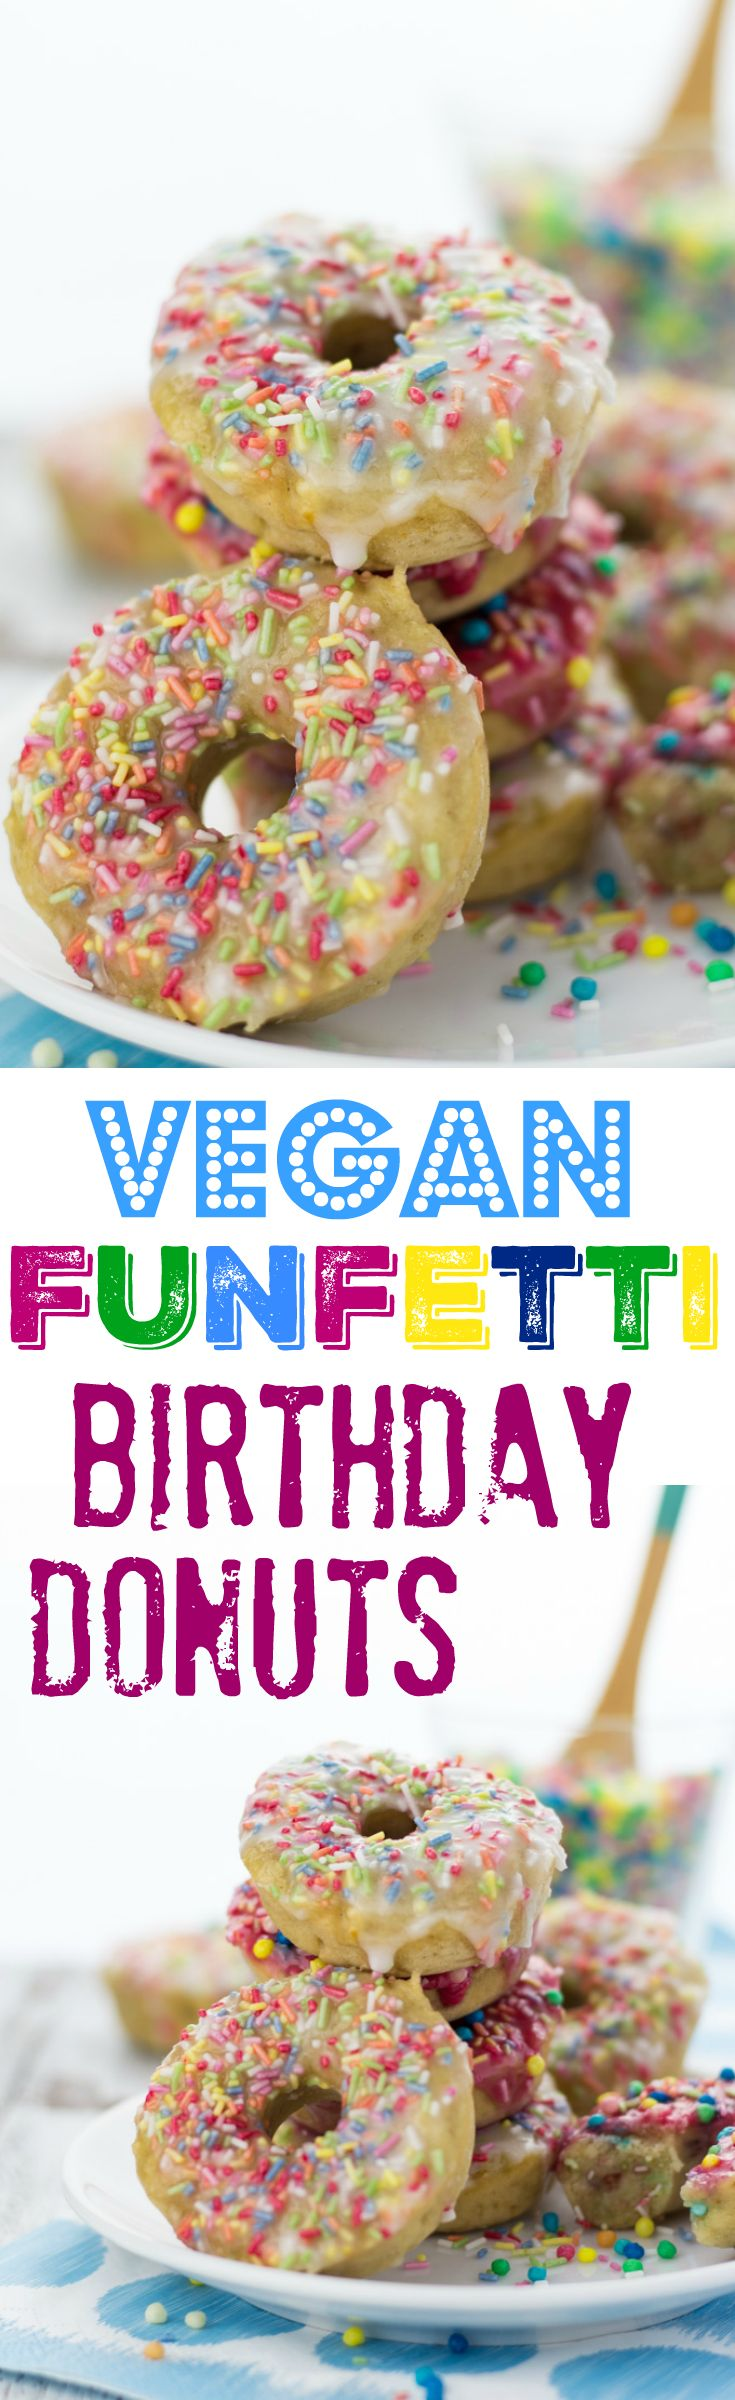 Celebrate your next birthday with these vegan baked birthday donuts with rainbow sprinkles, vanilla and cherry frosting!